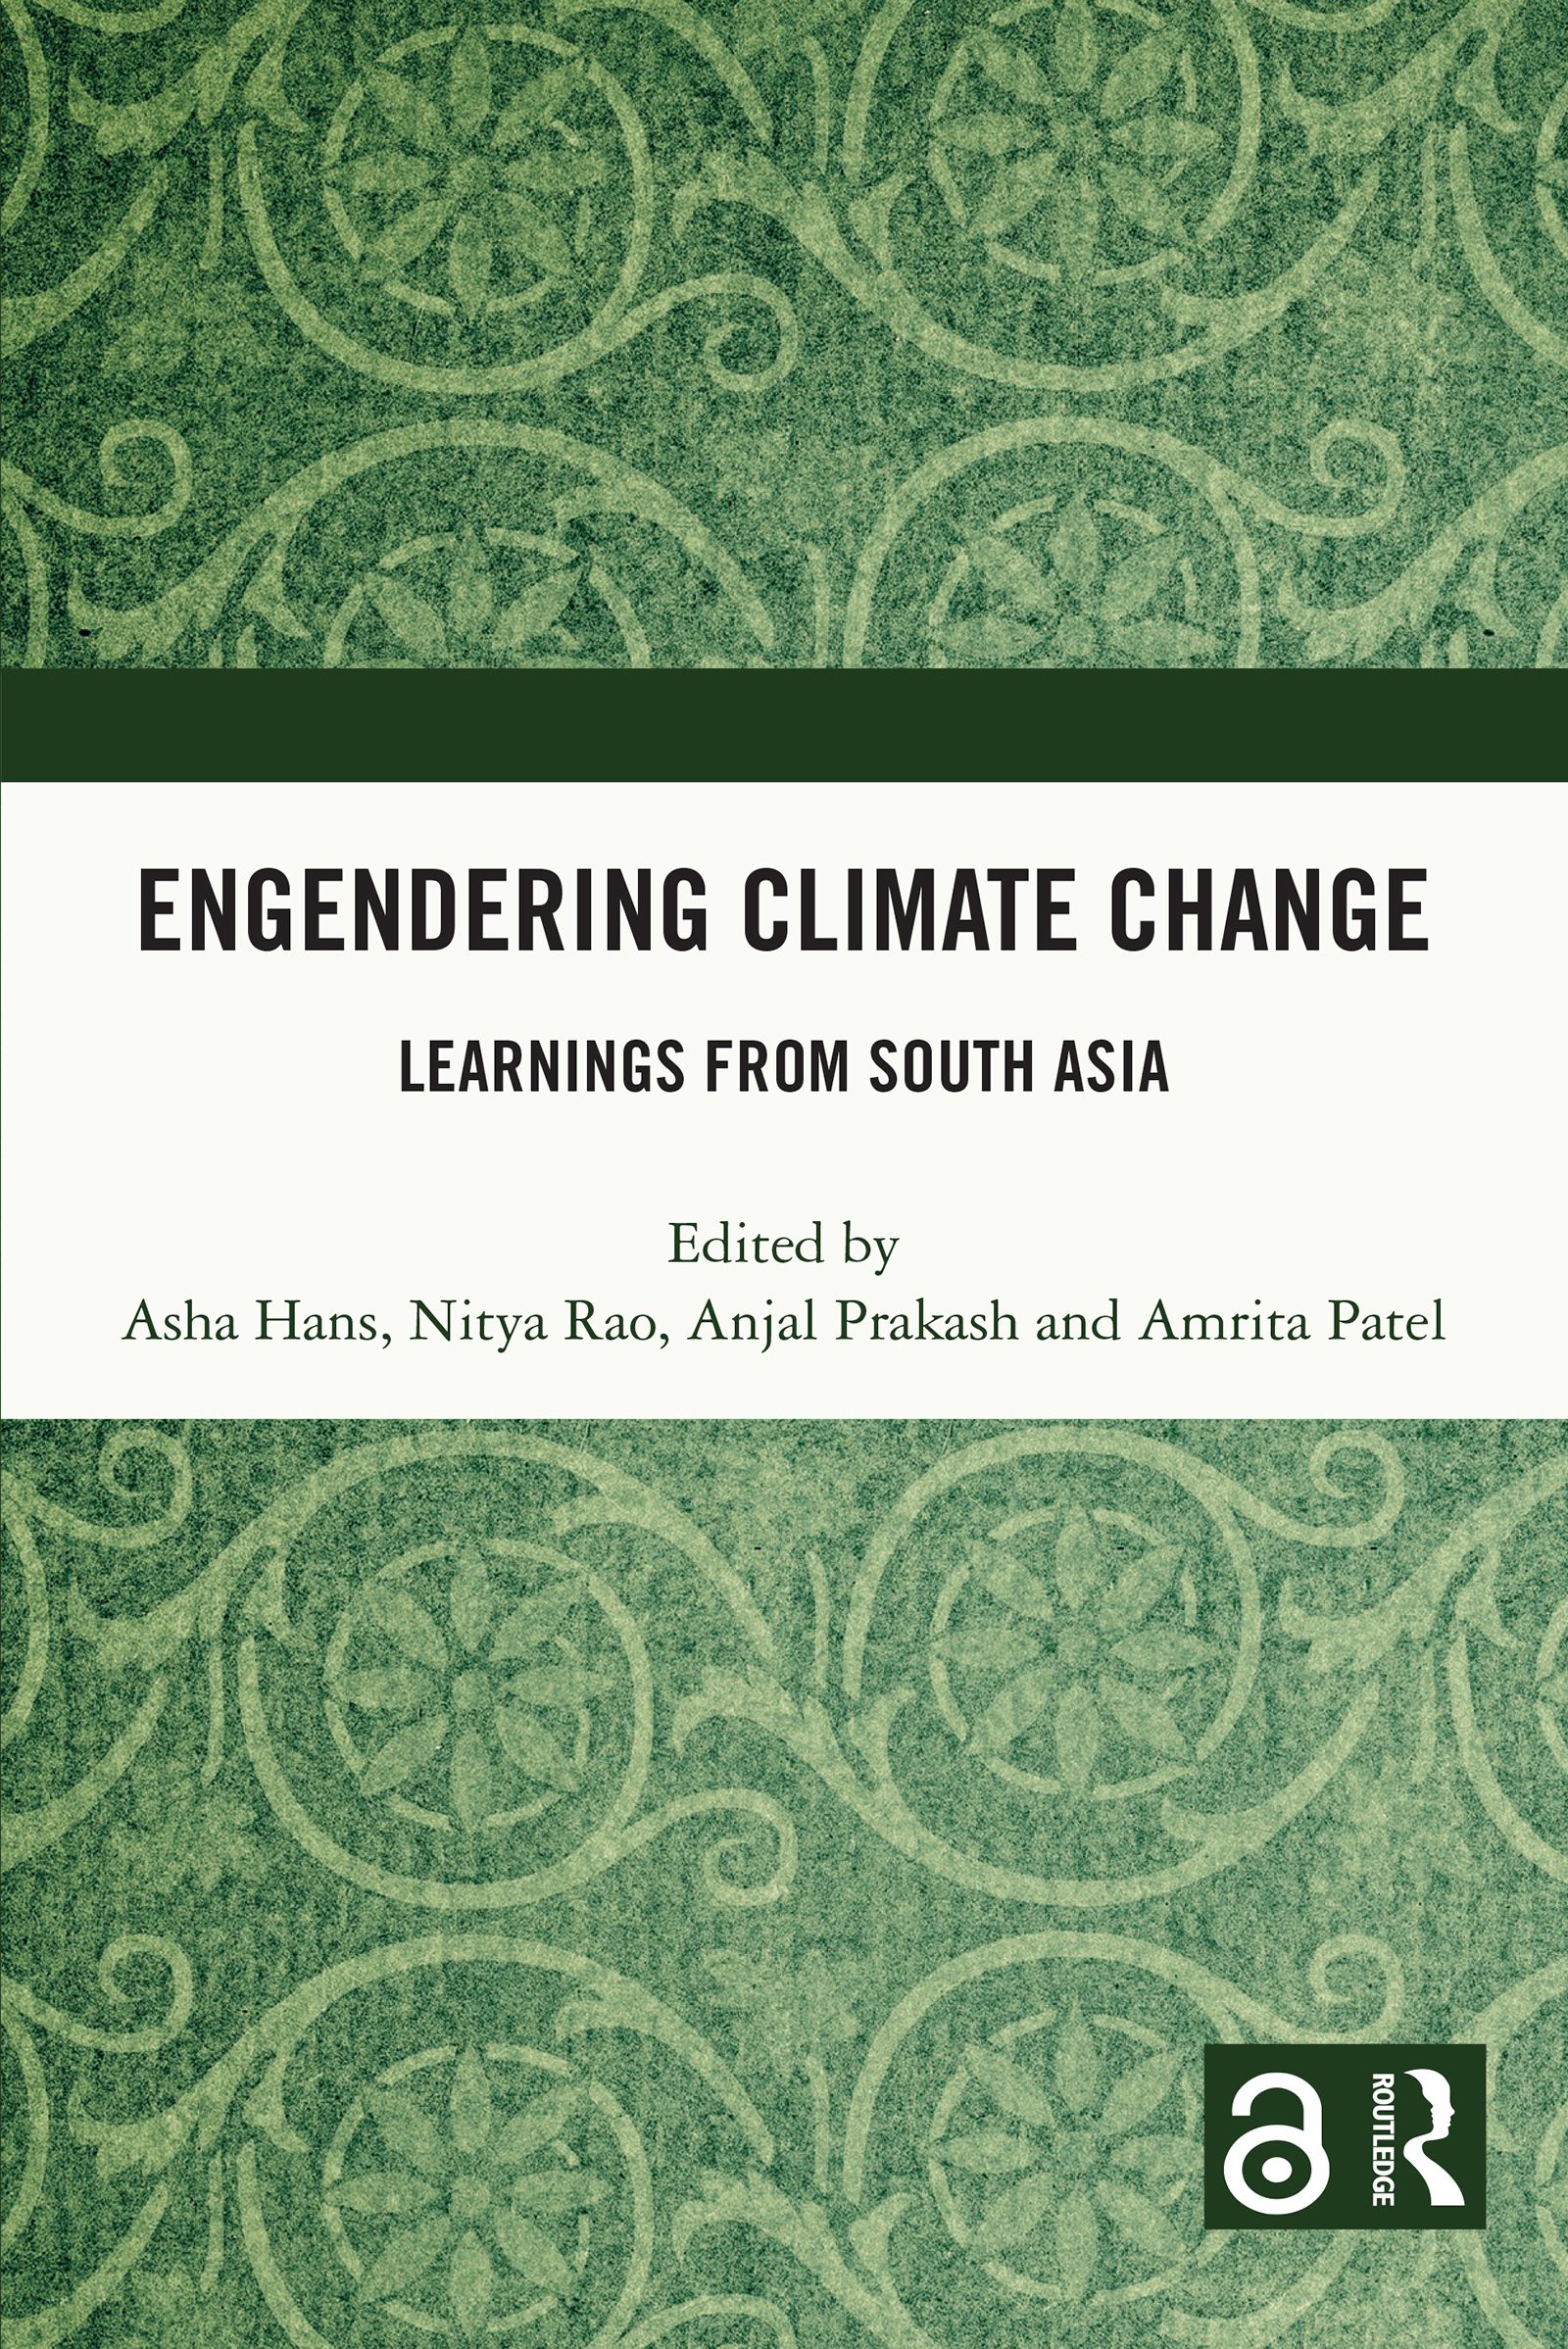 Shaping gendered responses to climate change in South Asia